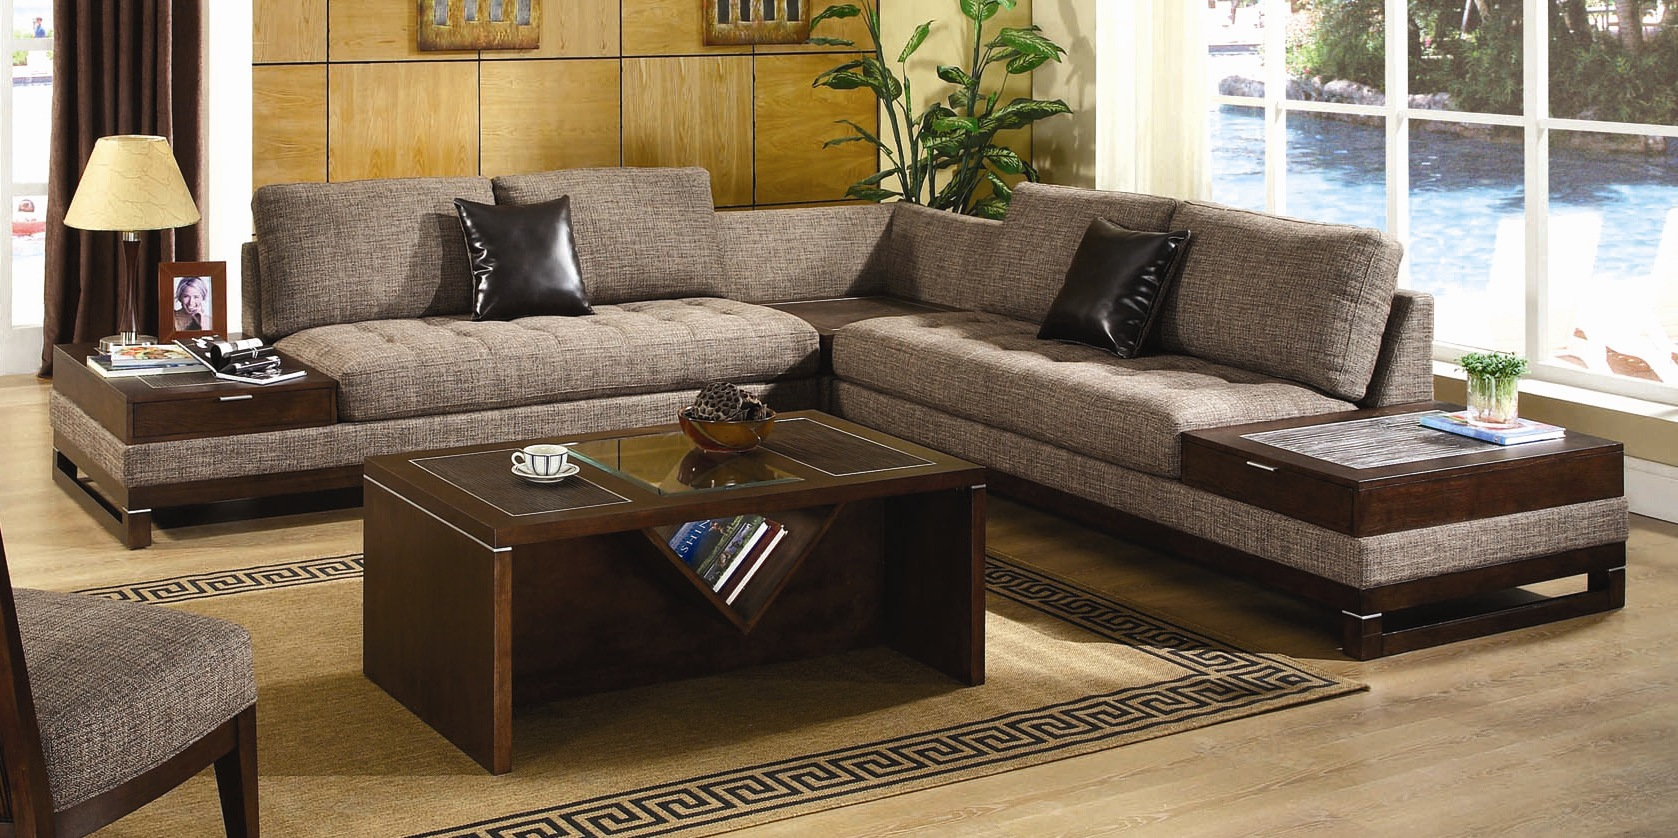 living room furniture set living room modern sets for sale | navpa2016 XTMHDSZ